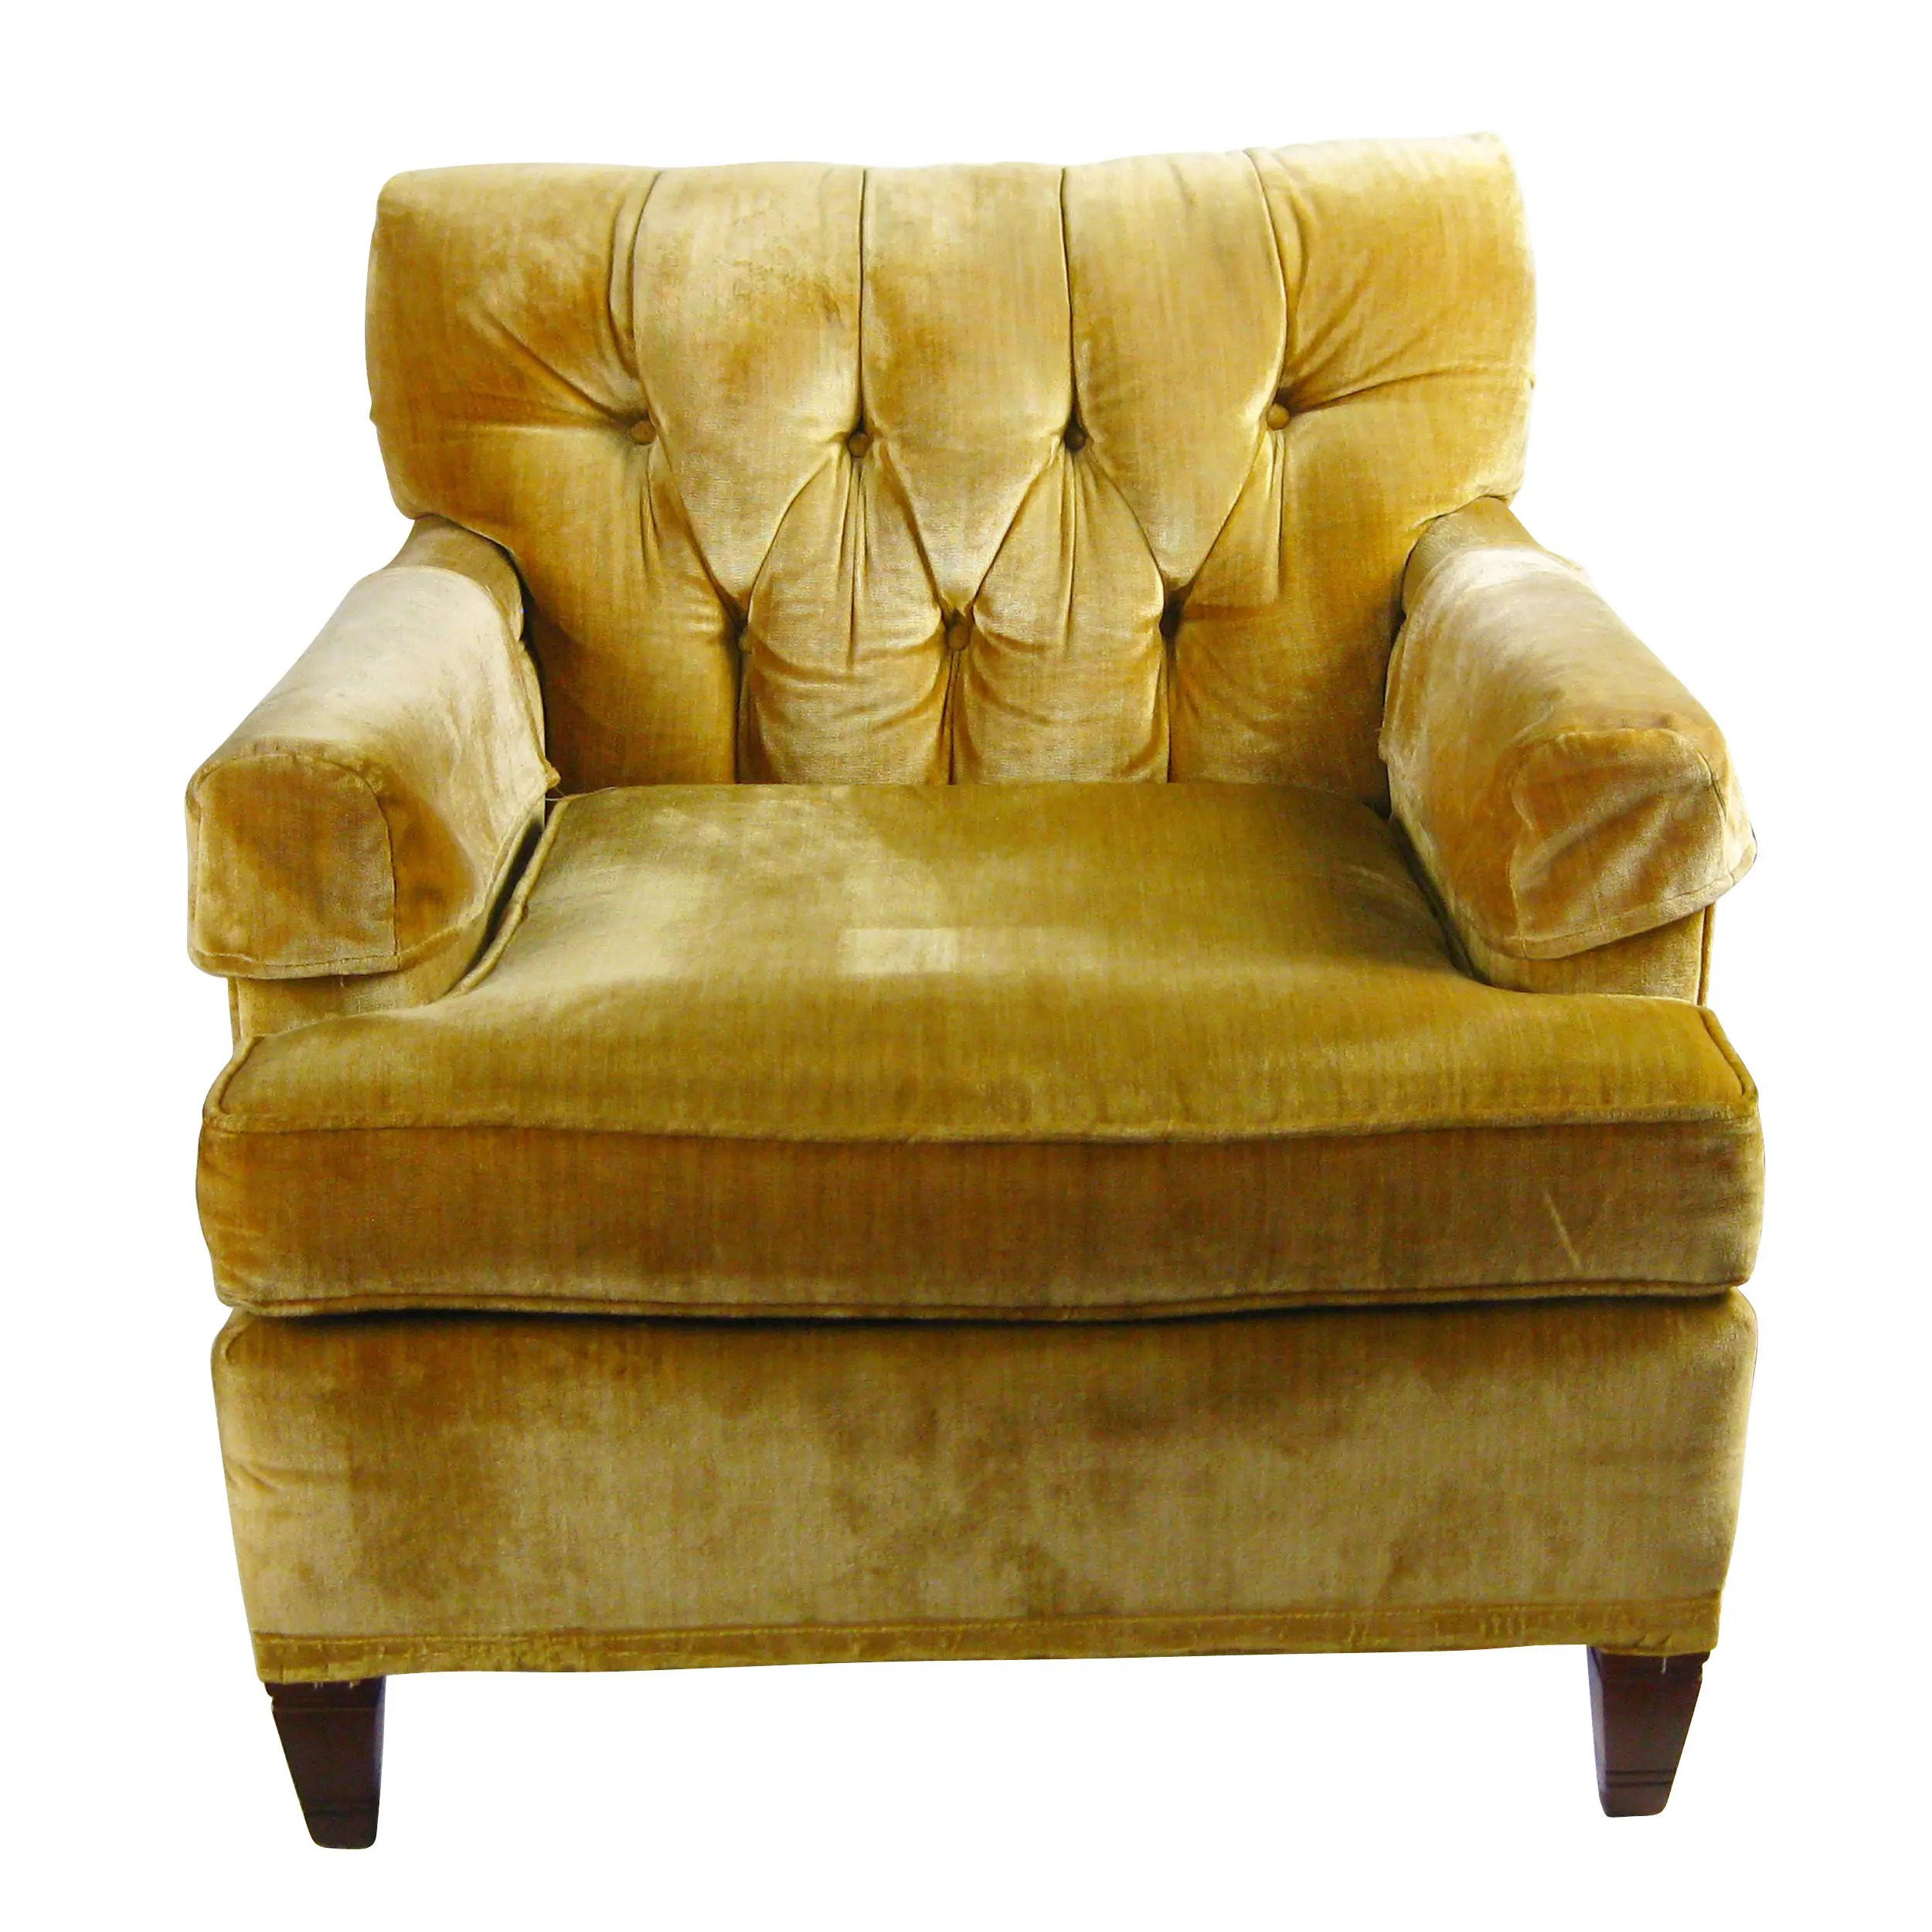 Vintage North Hickory Furniture Company Yellow Gold Tufted